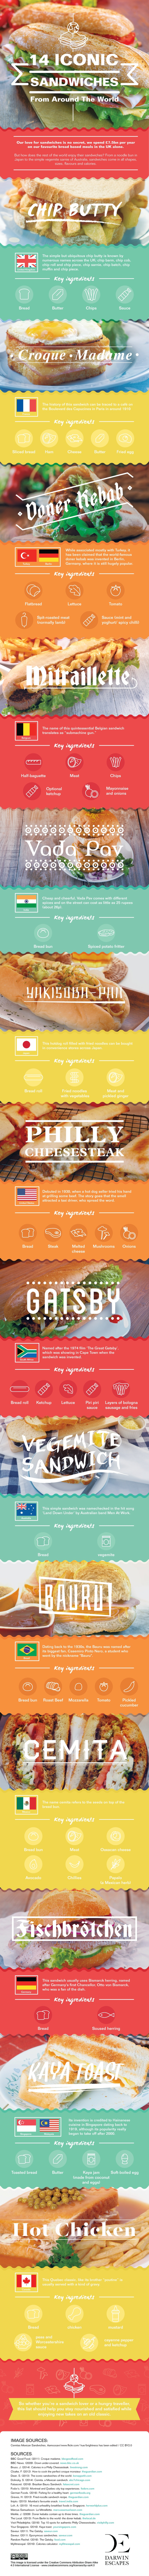 x-iconic-sandwiches-from-around-the-world-DV4